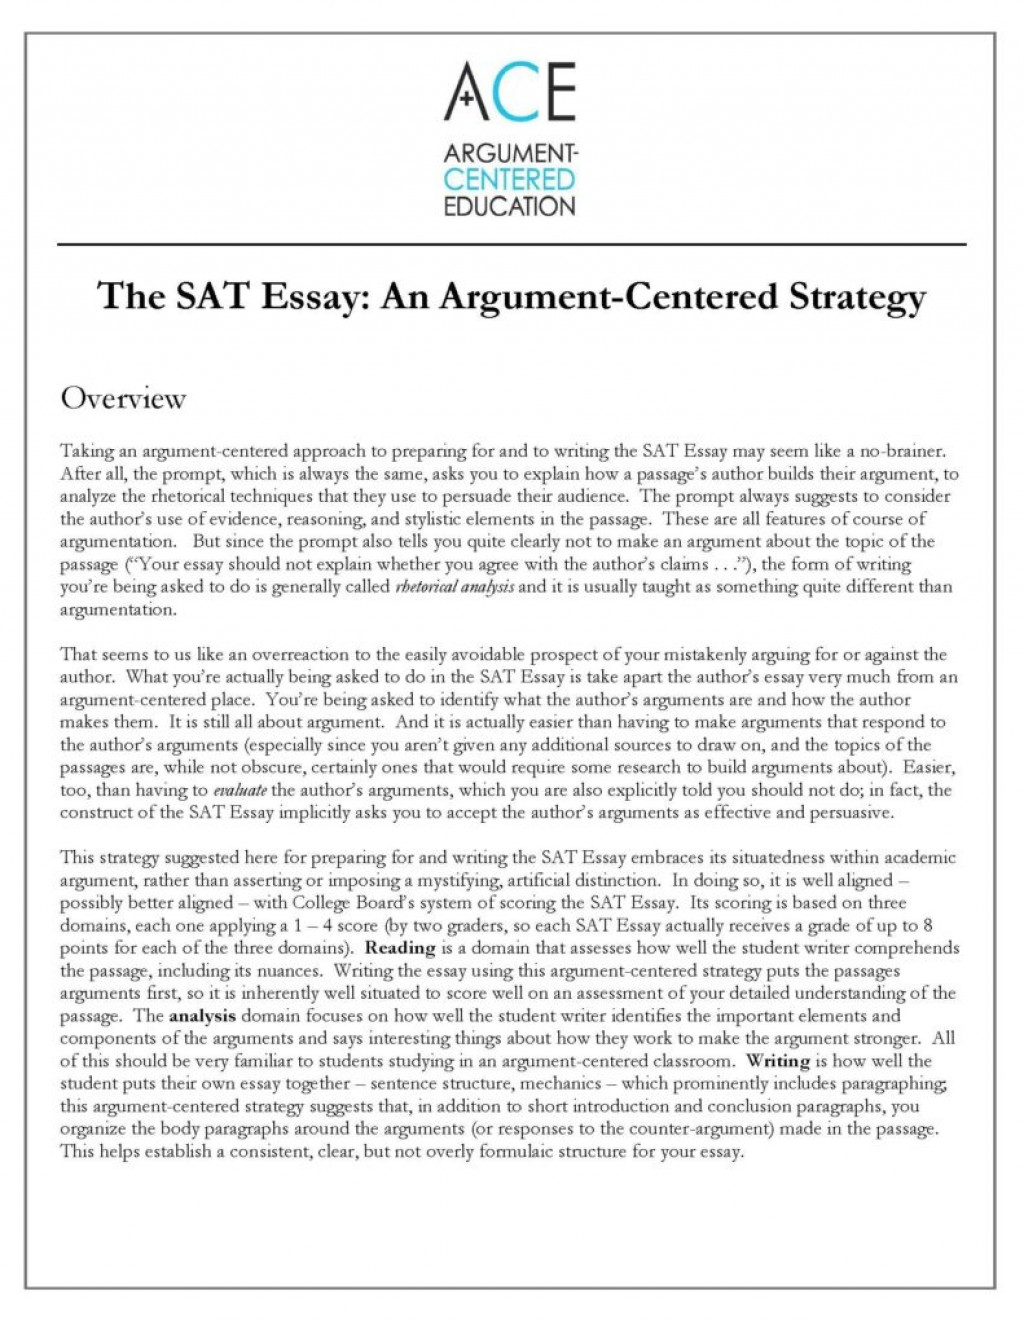 023 Essay Example Sat Satessaystrategyimage18 Rare New Tips Pdf Time Examples Large